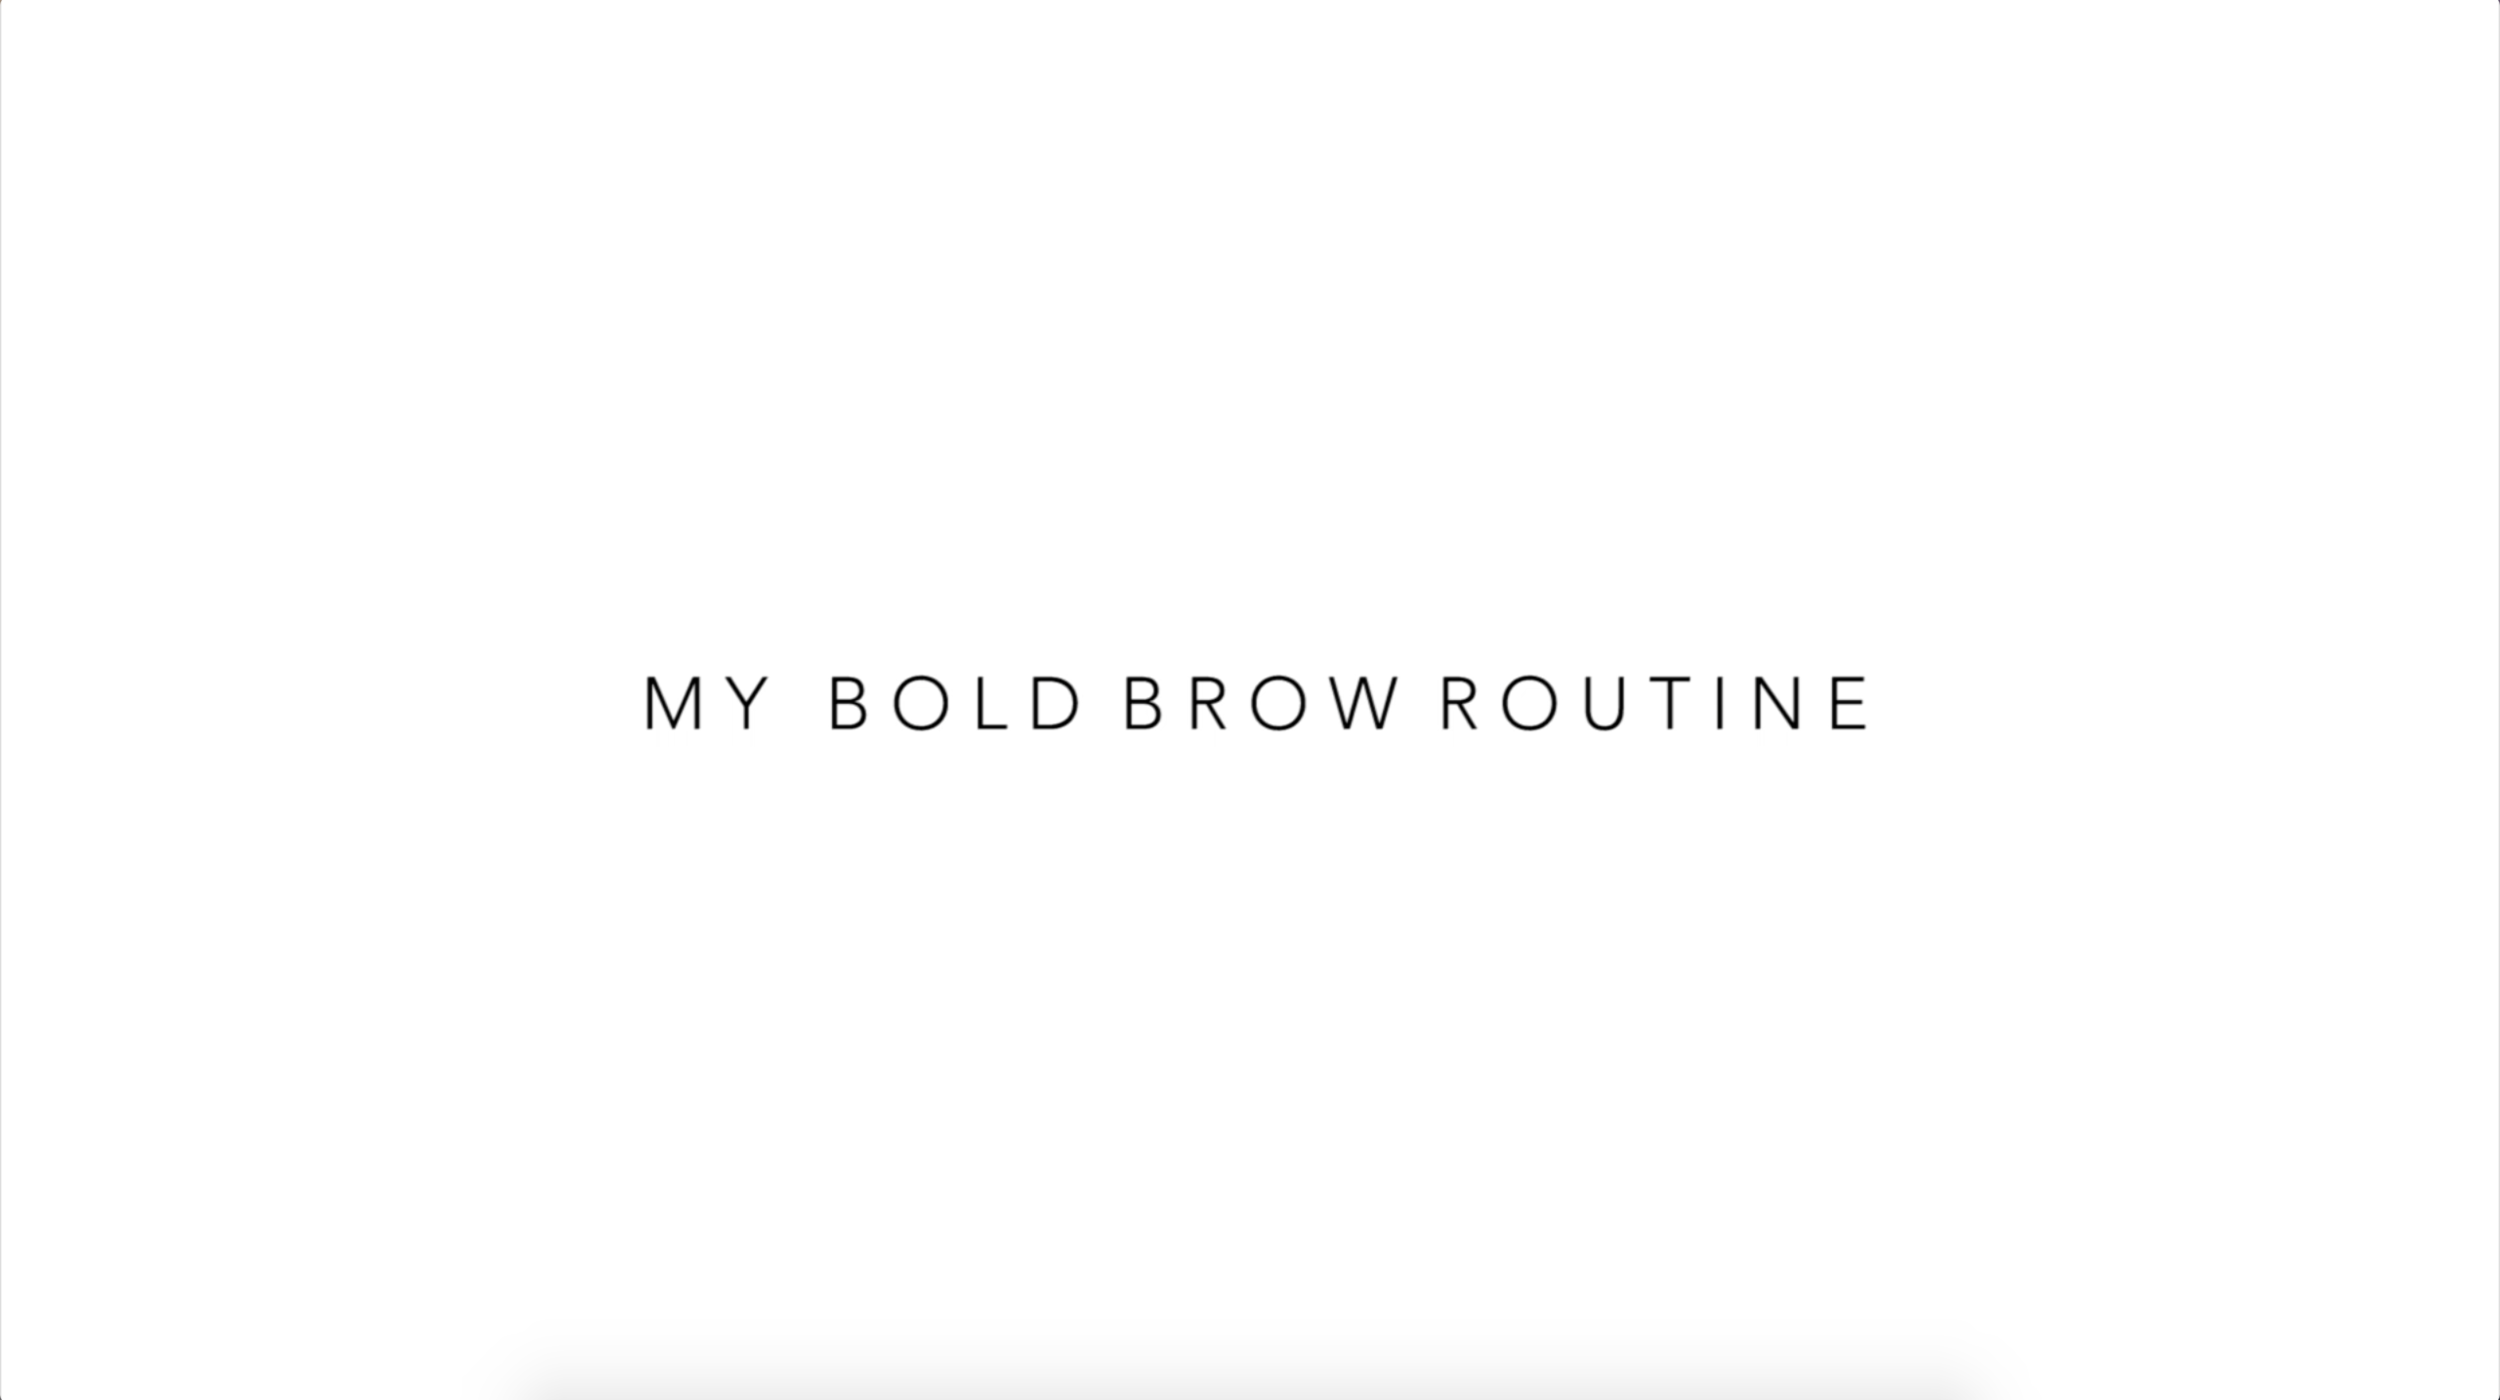 My Everyday Bold Brow Routine